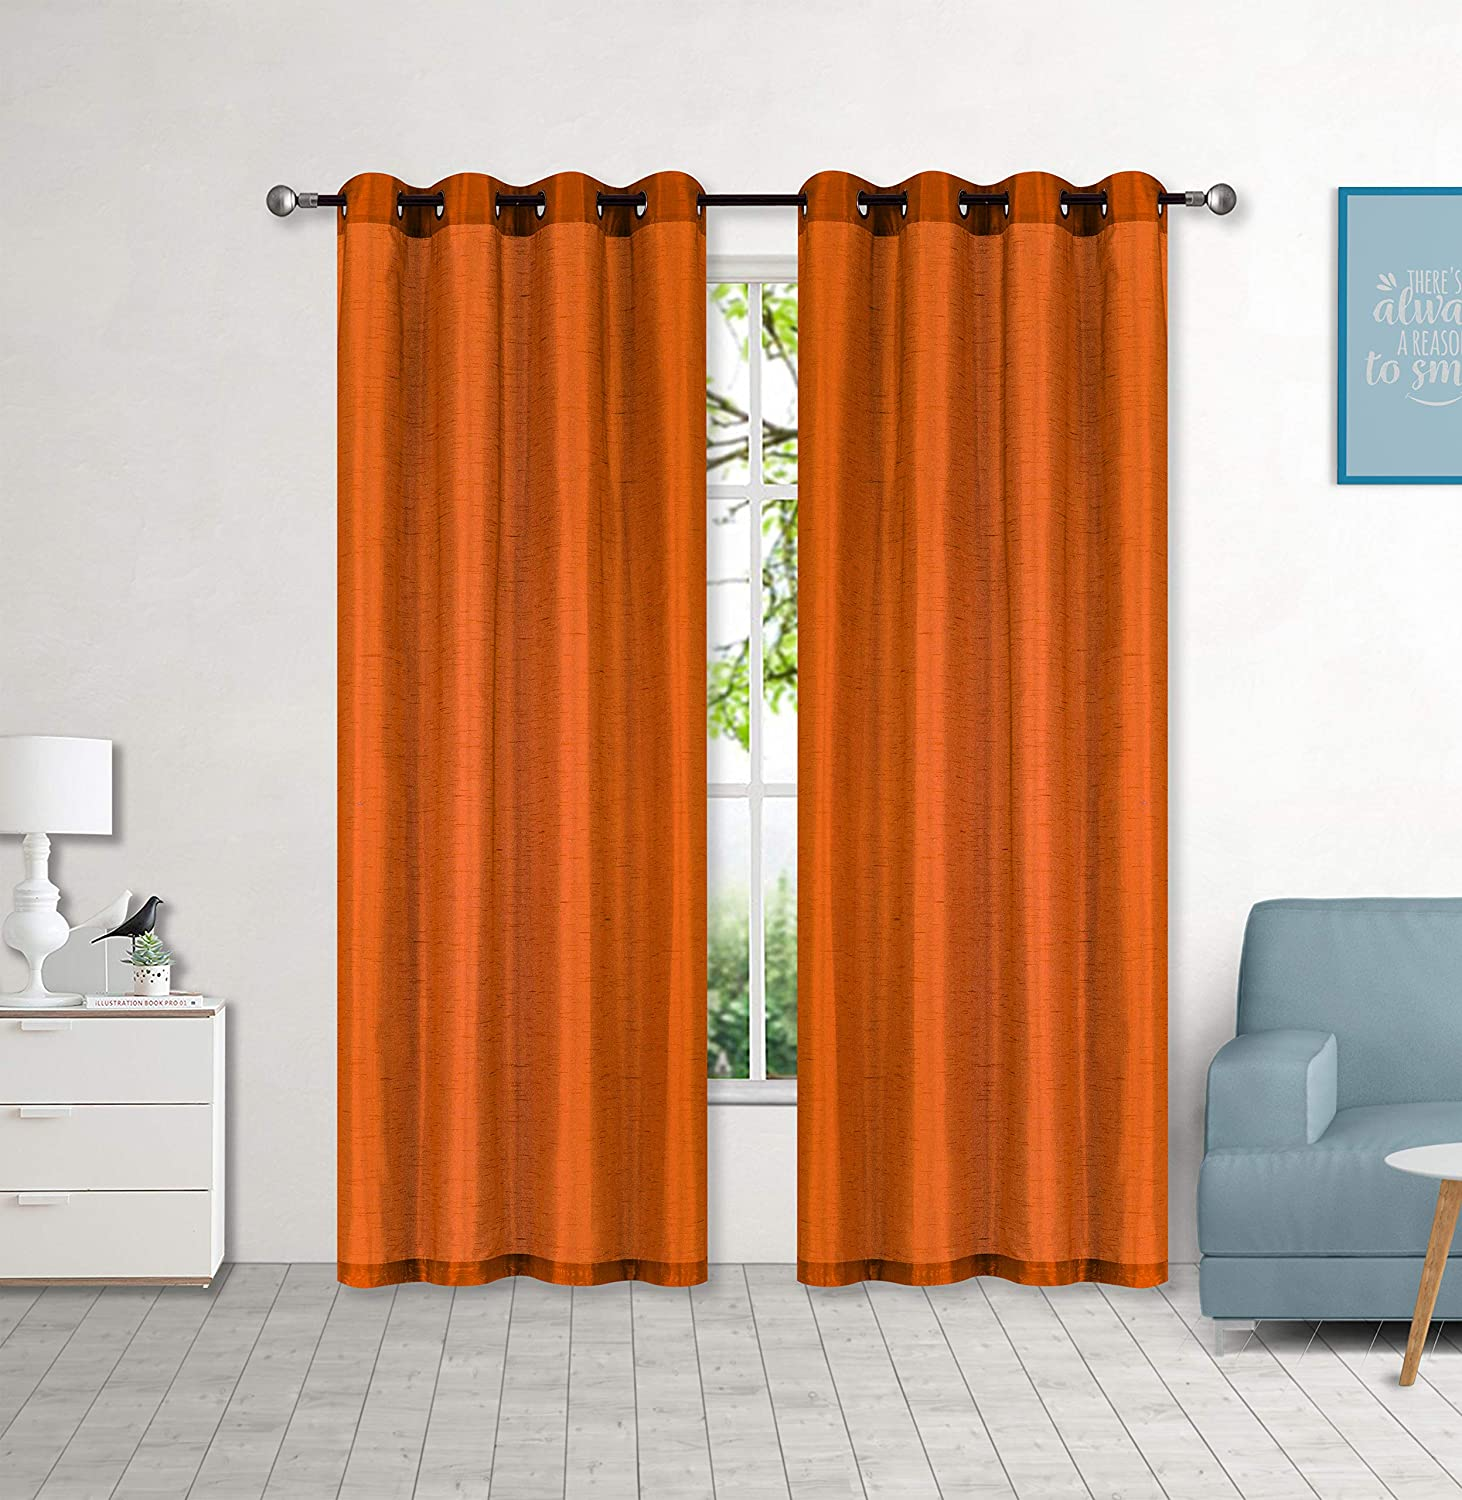 "Sapphire Home 2 Panel Faux Silk Solid Curtain Drapes with Grommet (108"" Total Width by 84"" L), Solid Color Curtain Panels for Any Bedroom or Patio Door - Non-blackouts/Semi Sheer Panels - Orange"